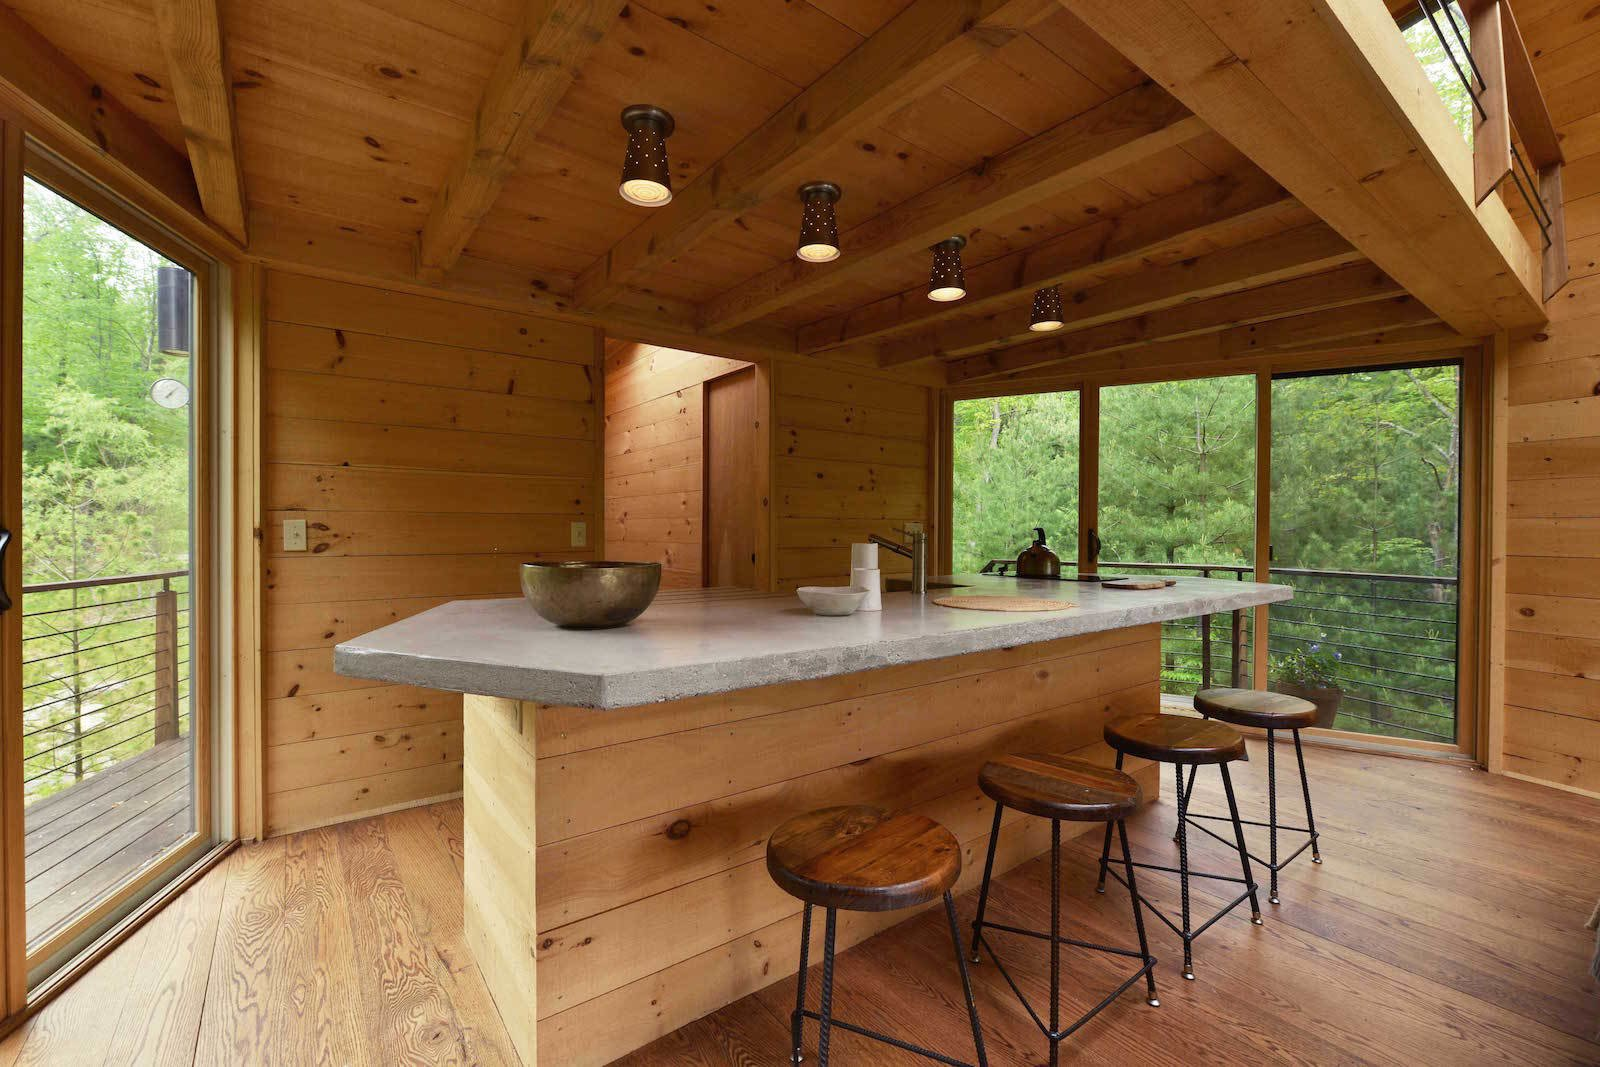 Kitchen, Concrete Counter, Medium Hardwood Floor, Ceiling Lighting, and Undermount Sink  Photo 8 of 11 in Sleep in This Romantic Tree House Just Outside NYC